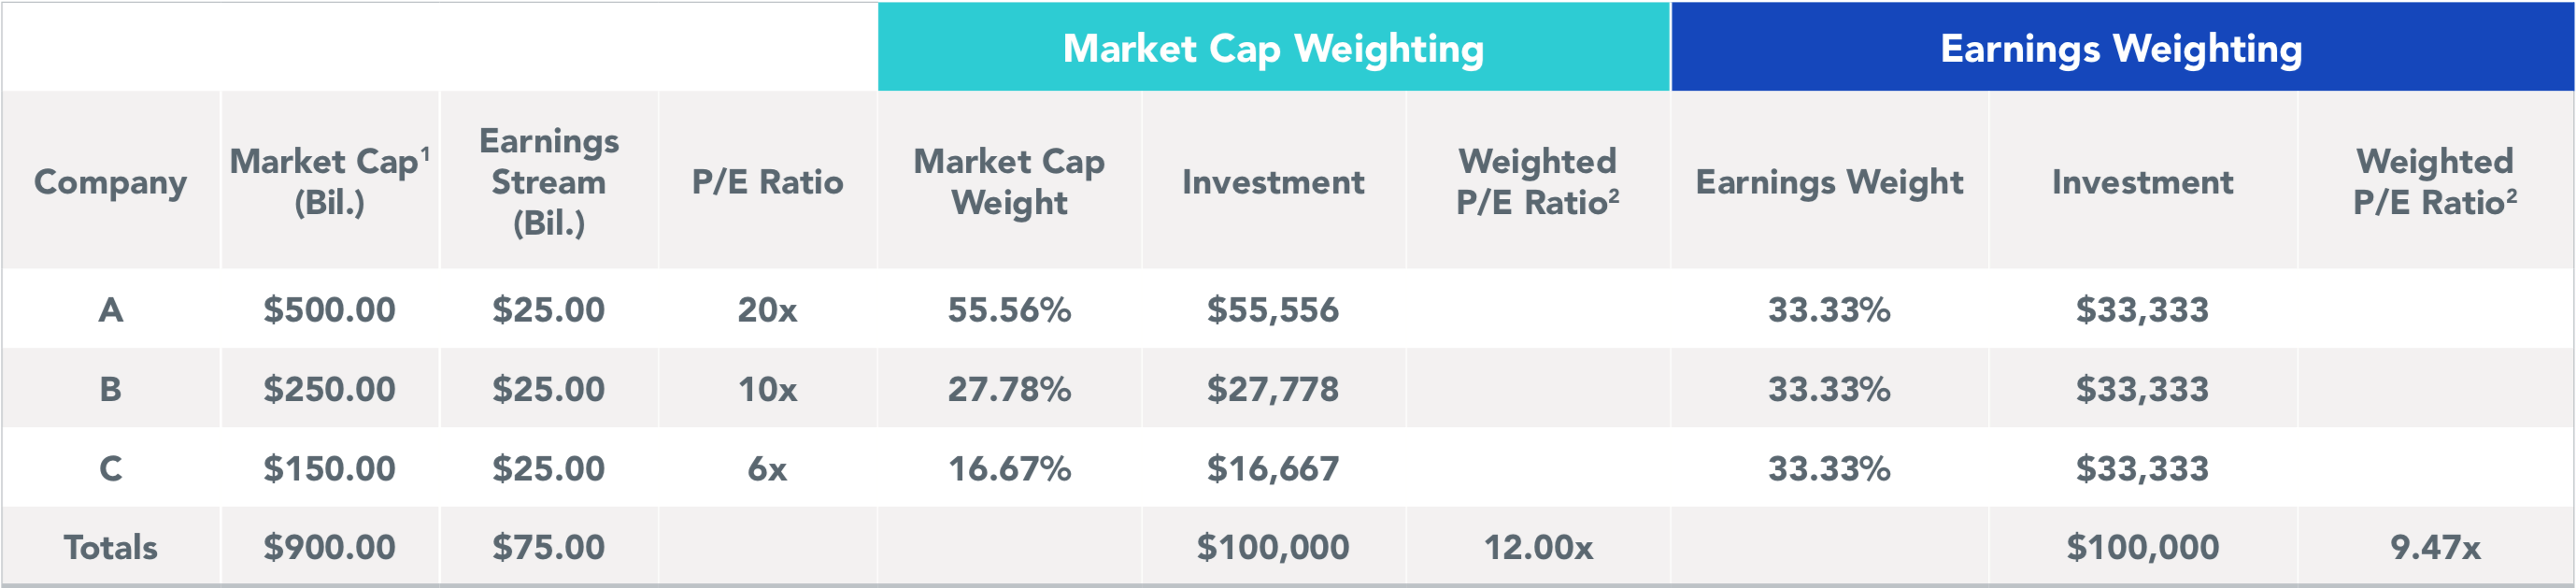 How We Weight by Earnings